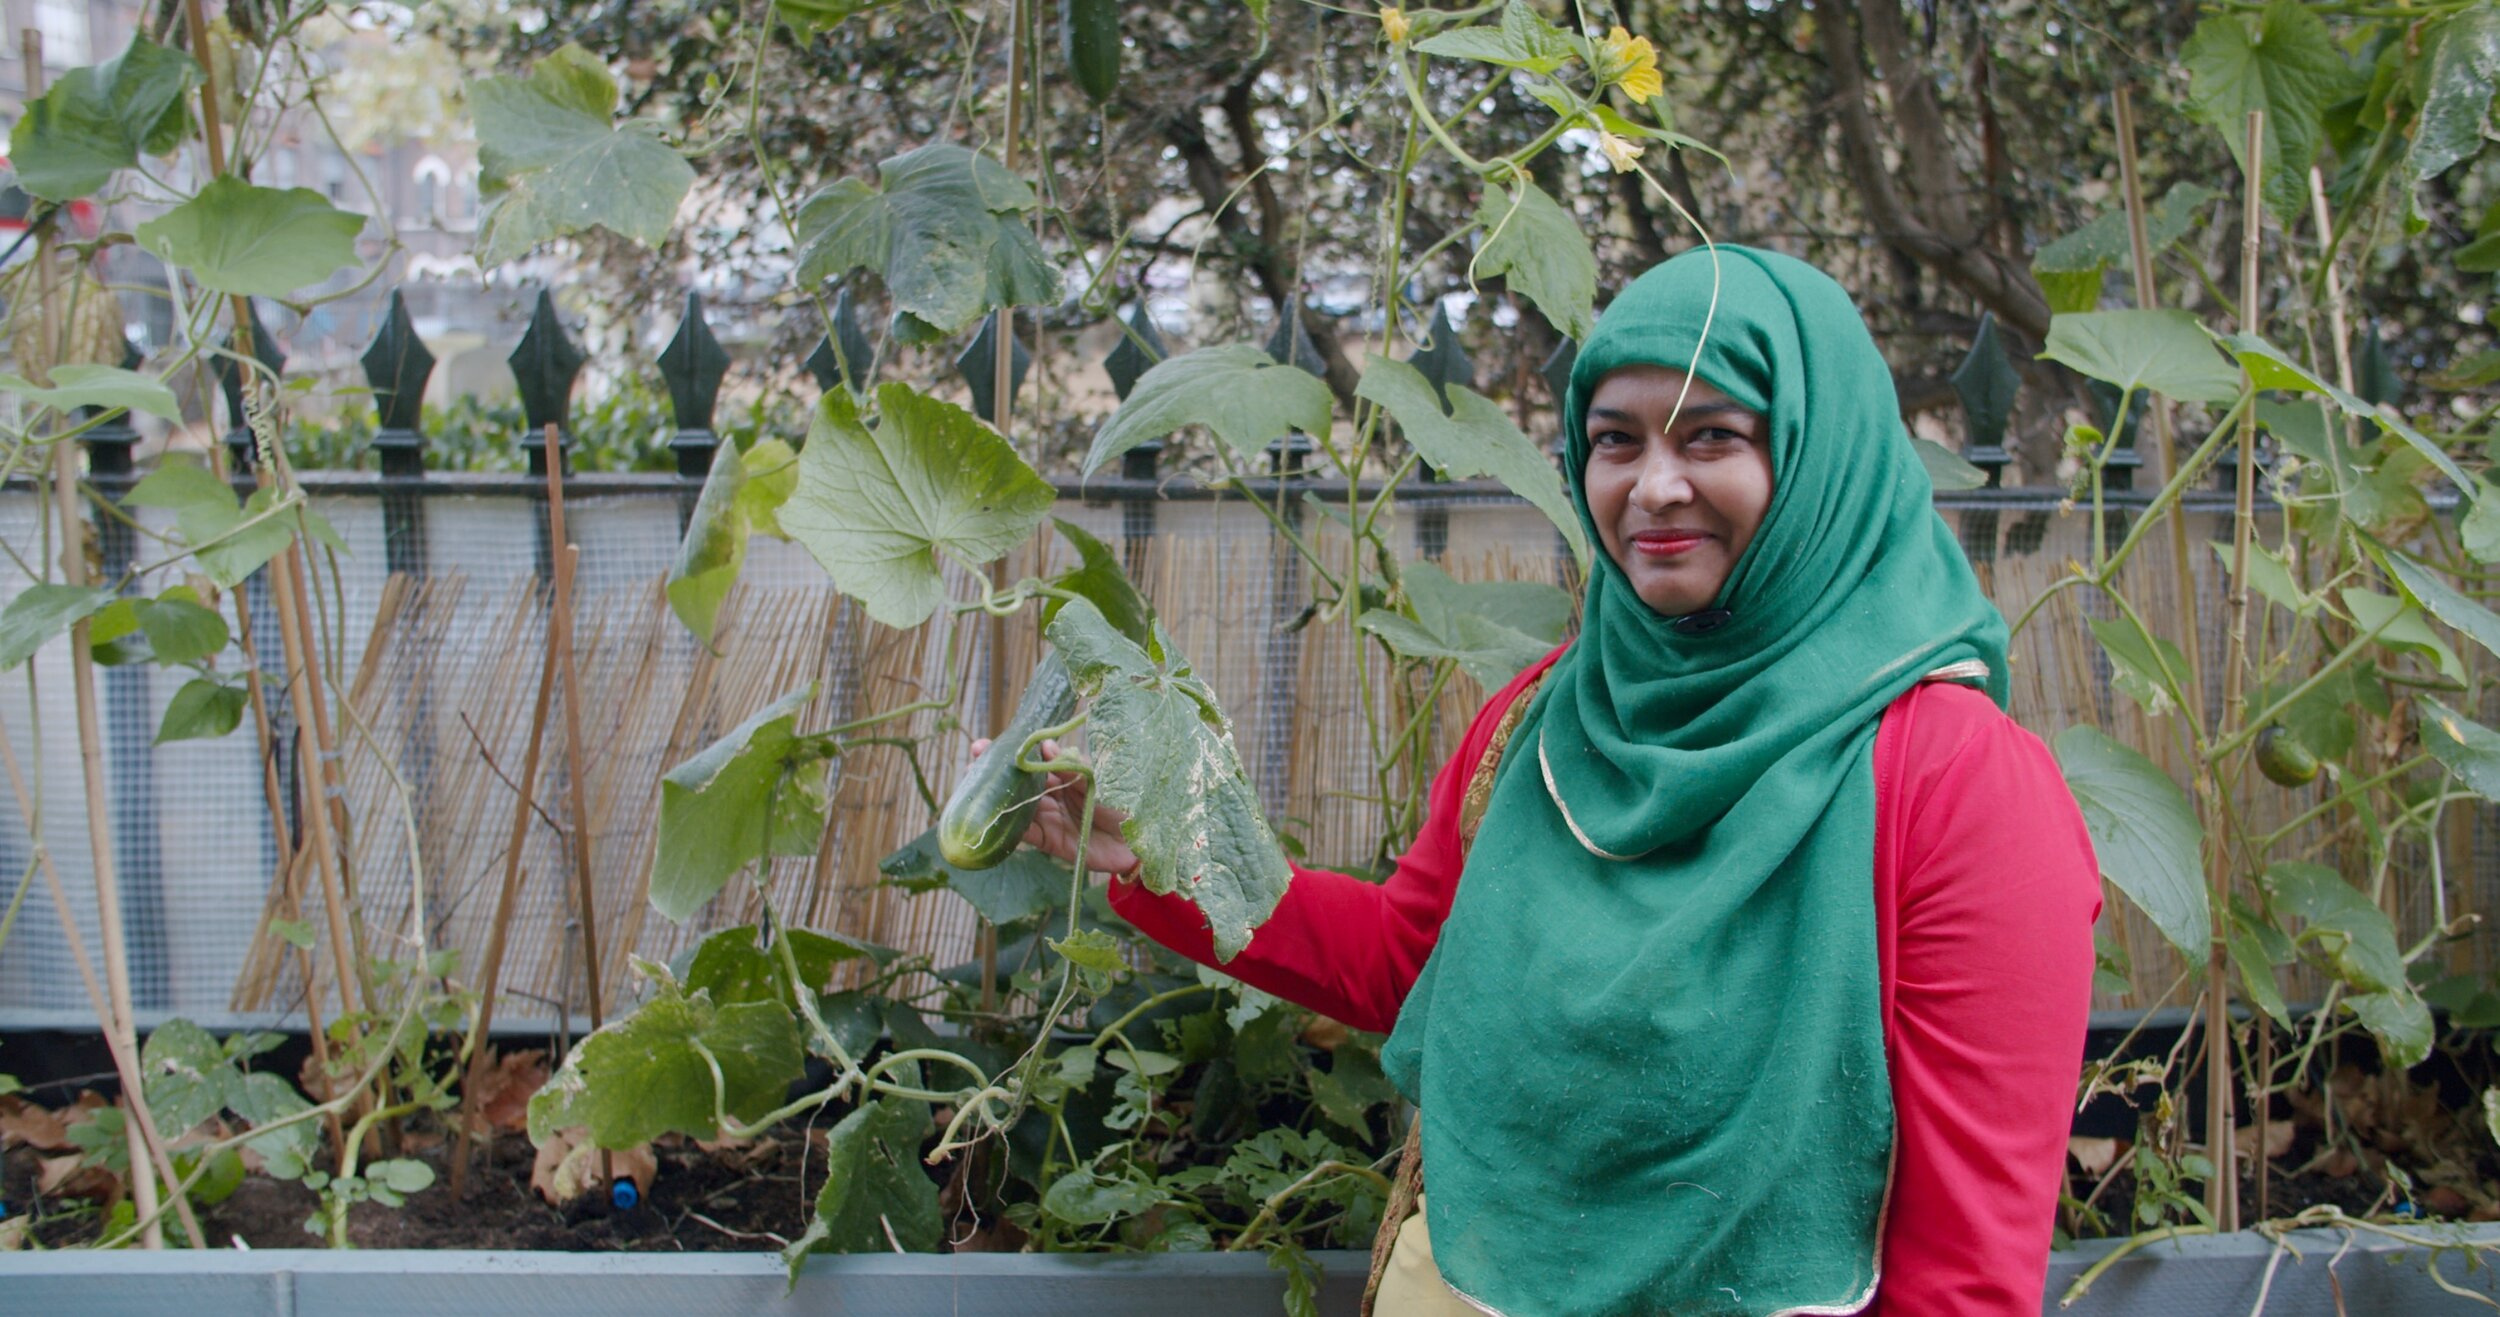 Selma, one of Deshi Shad, showing off the cucumbers she's growing. A good example of the ingenuity, resourcefulness, and skill so many Bengali women in Tower Hamlets have.